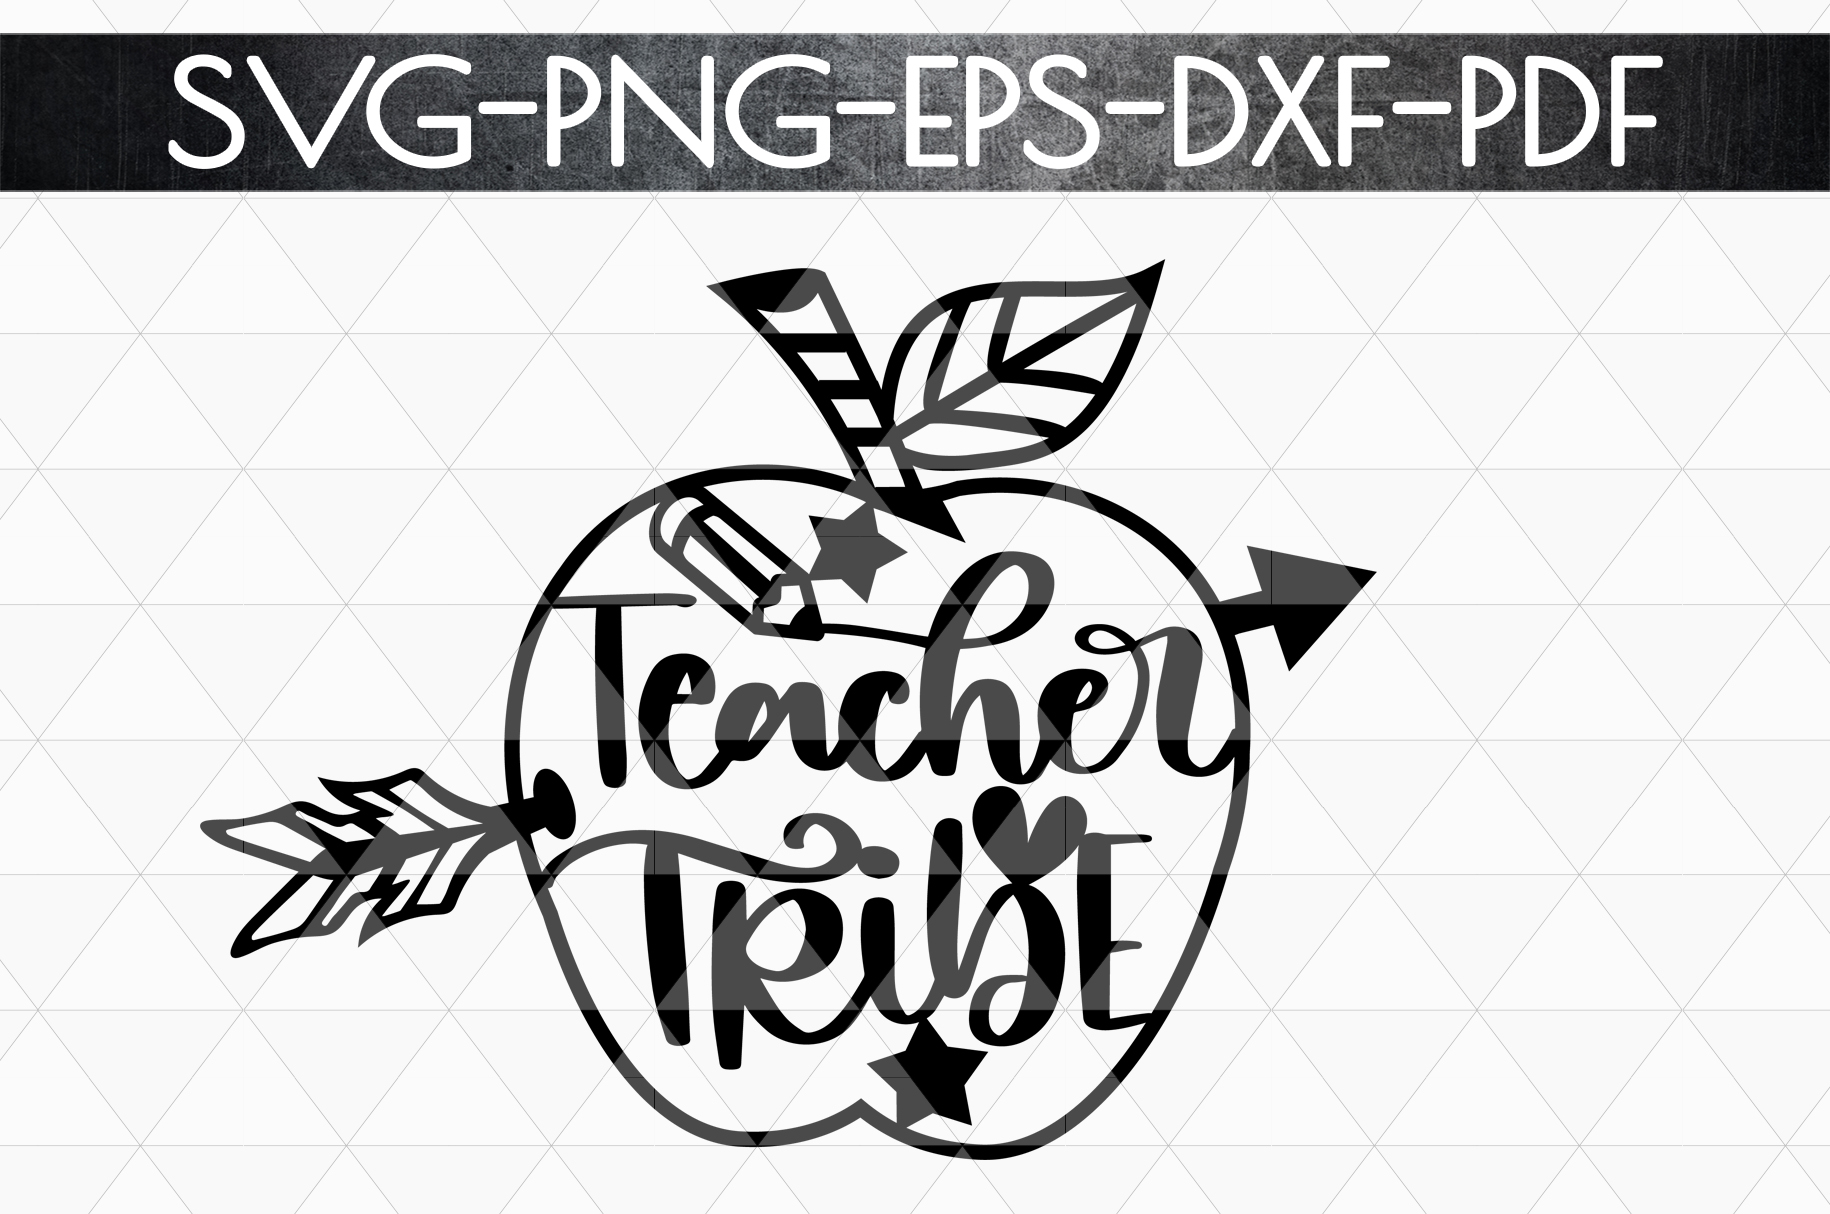 Teacher Tribe Papercut Template, Teacher Appreciation SVG example image 5